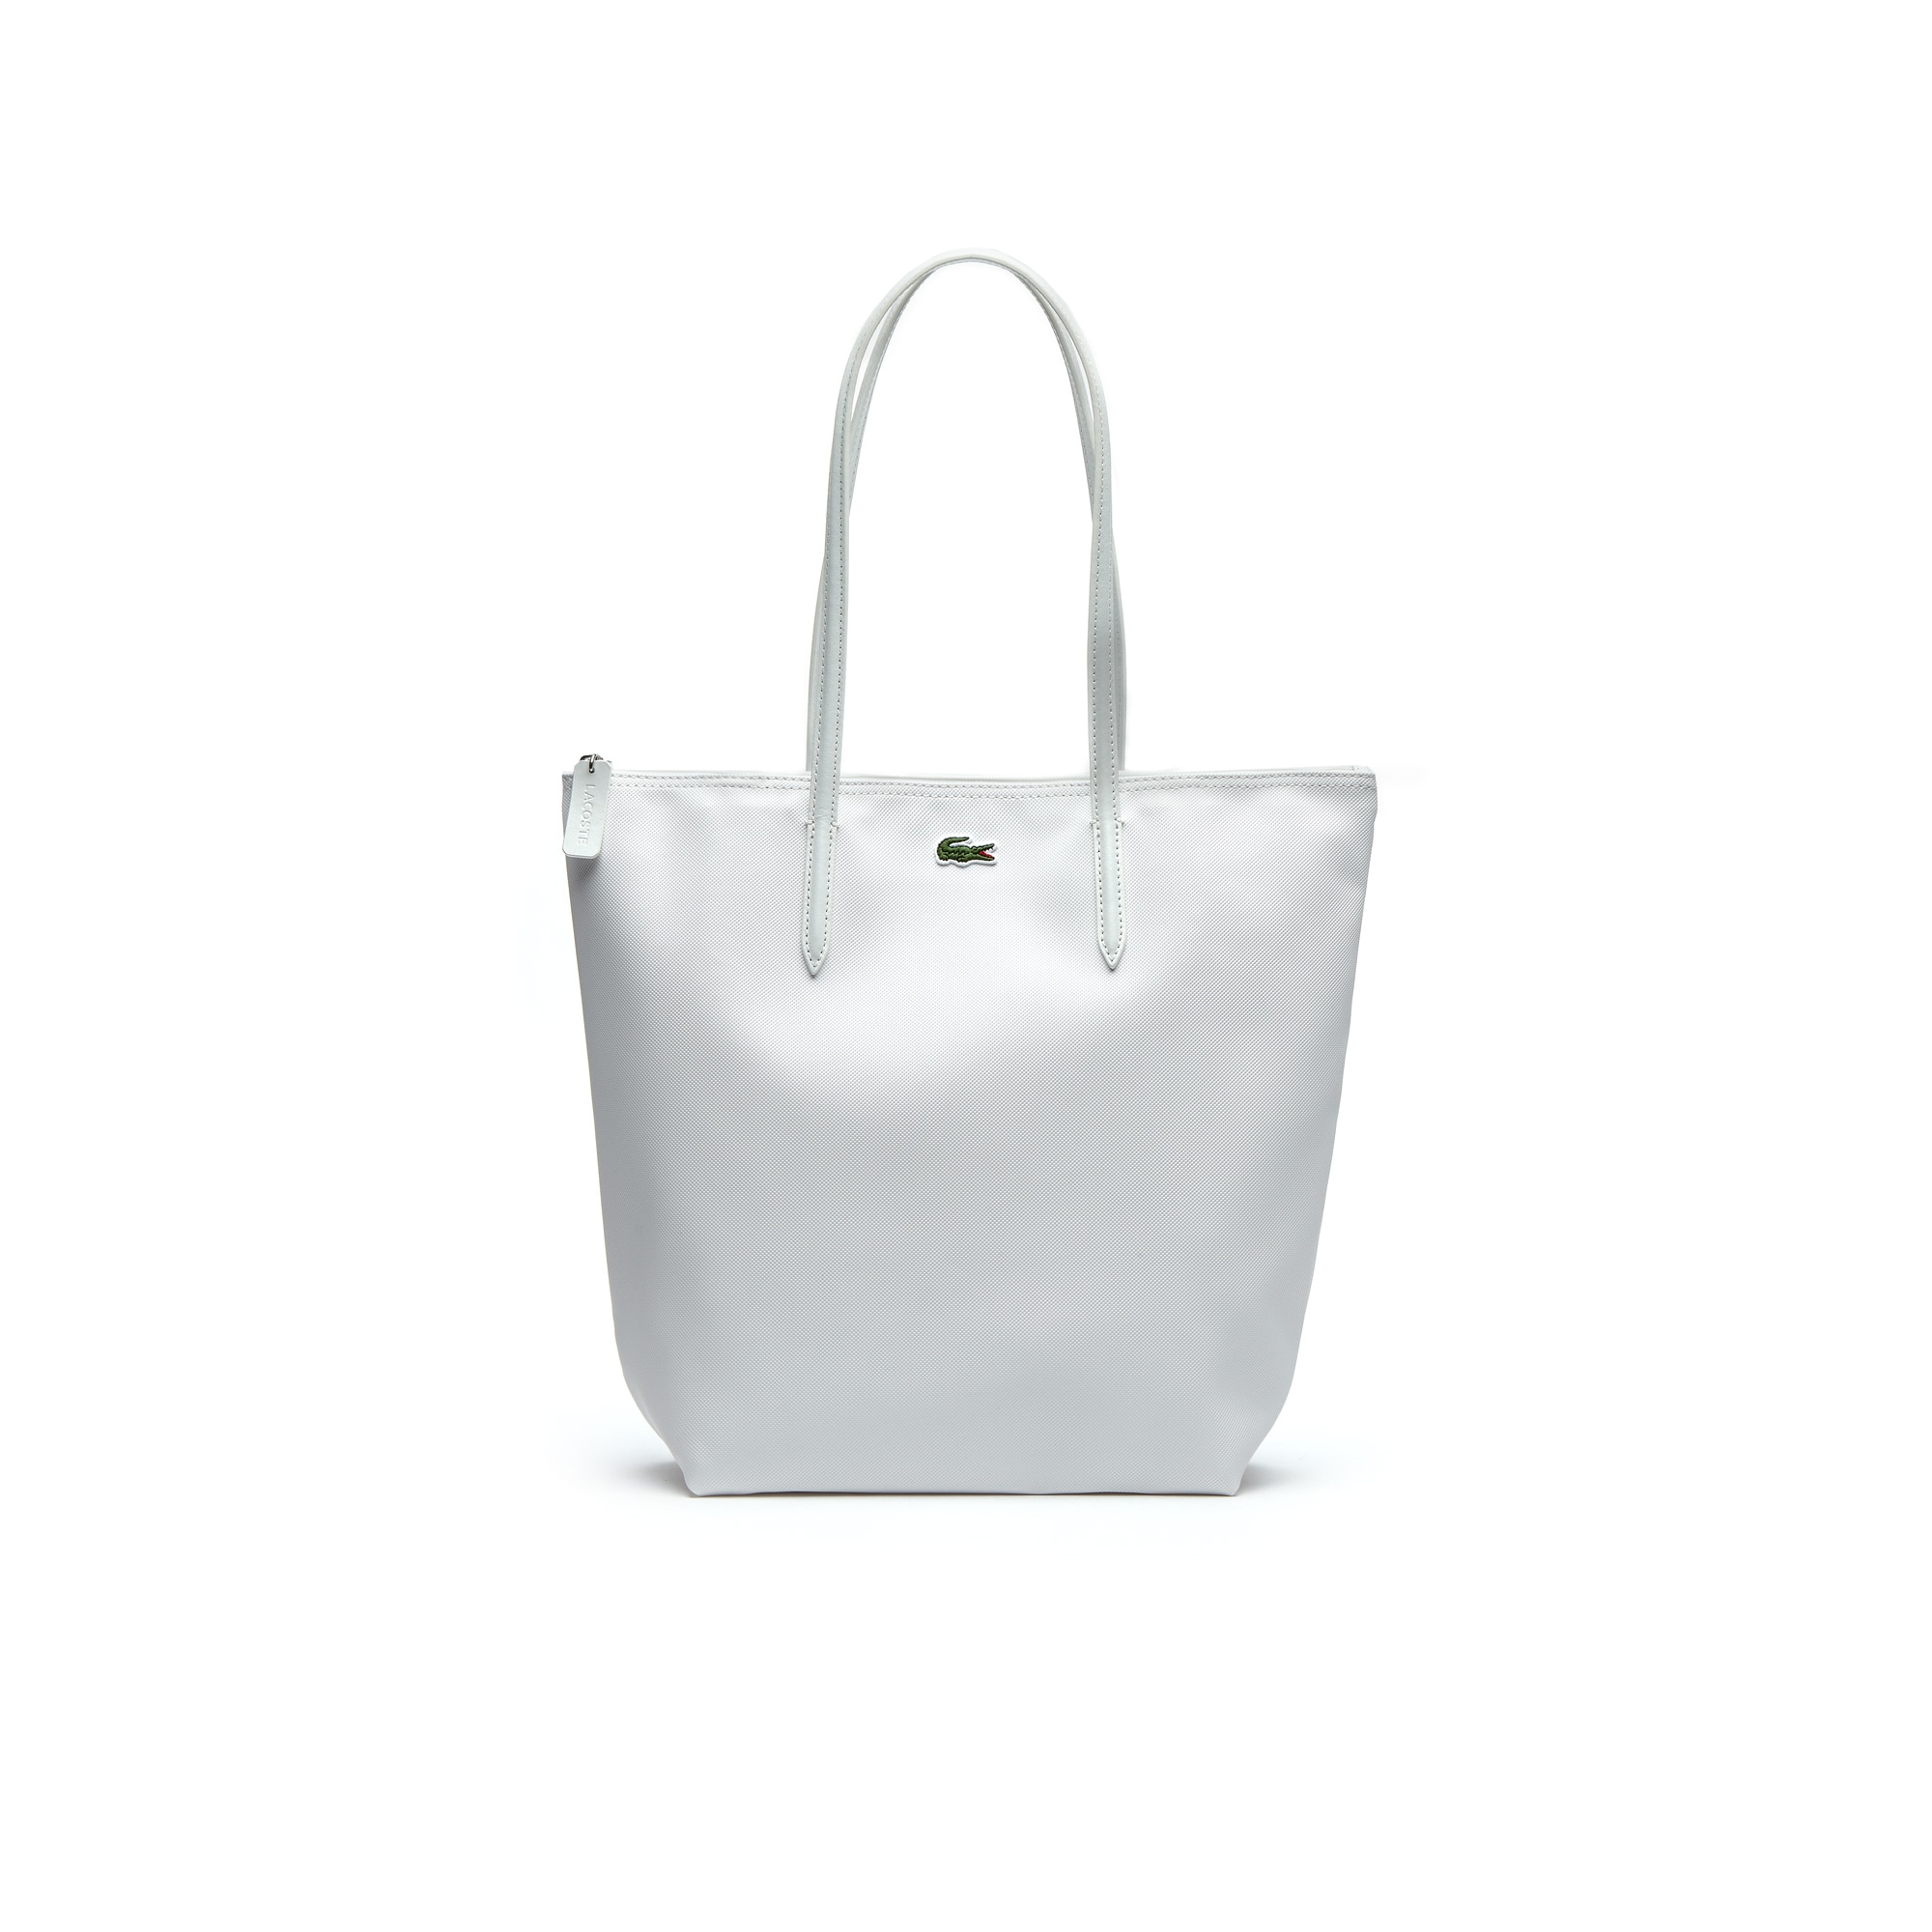 ed982cd6 Purses and Handbags |Clutches and Totes | LACOSTE